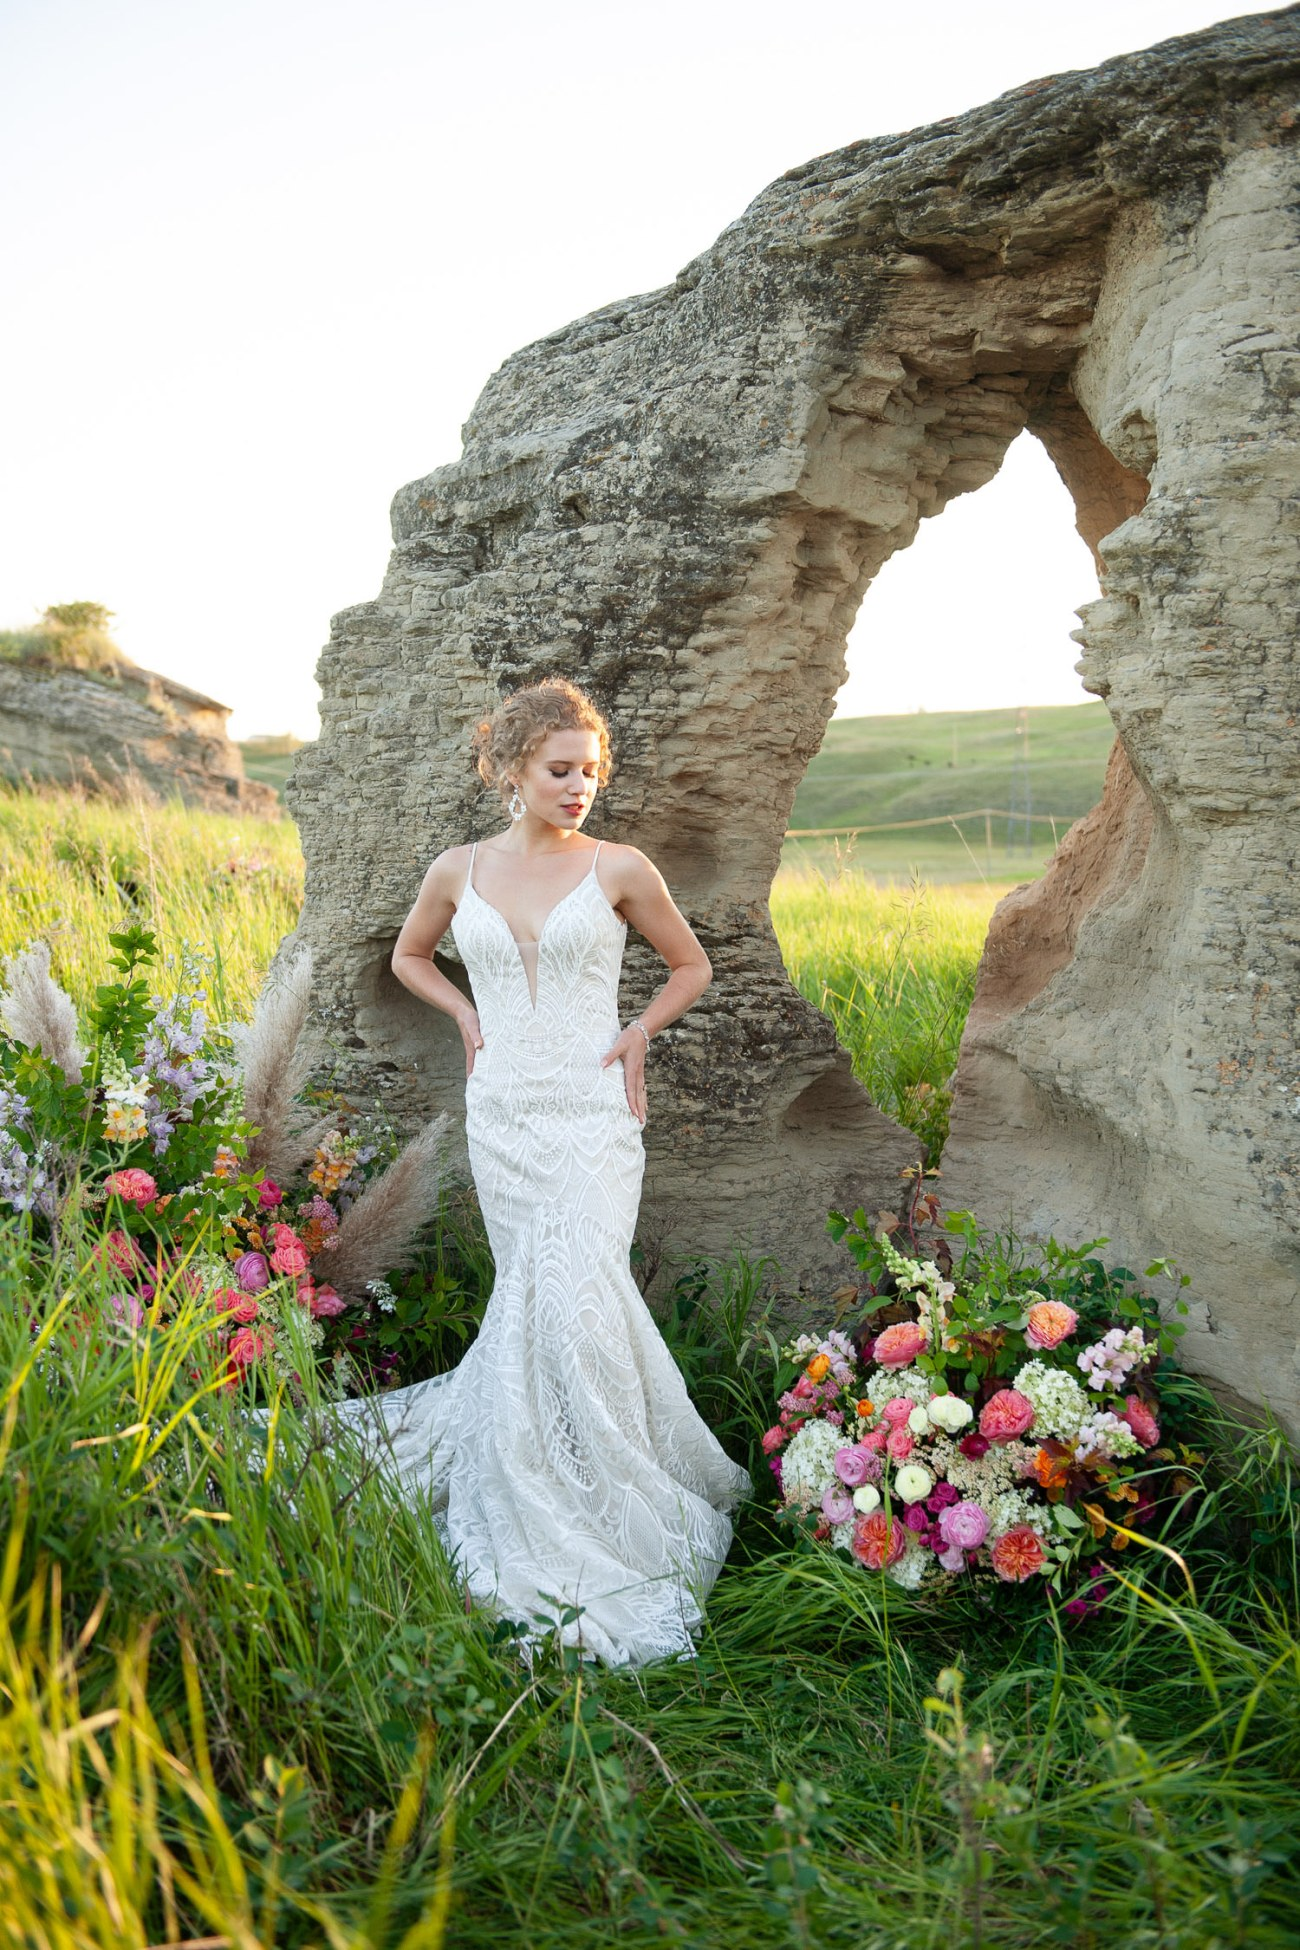 Bride stands at ceremony site captured by Tara Whittaker Photography